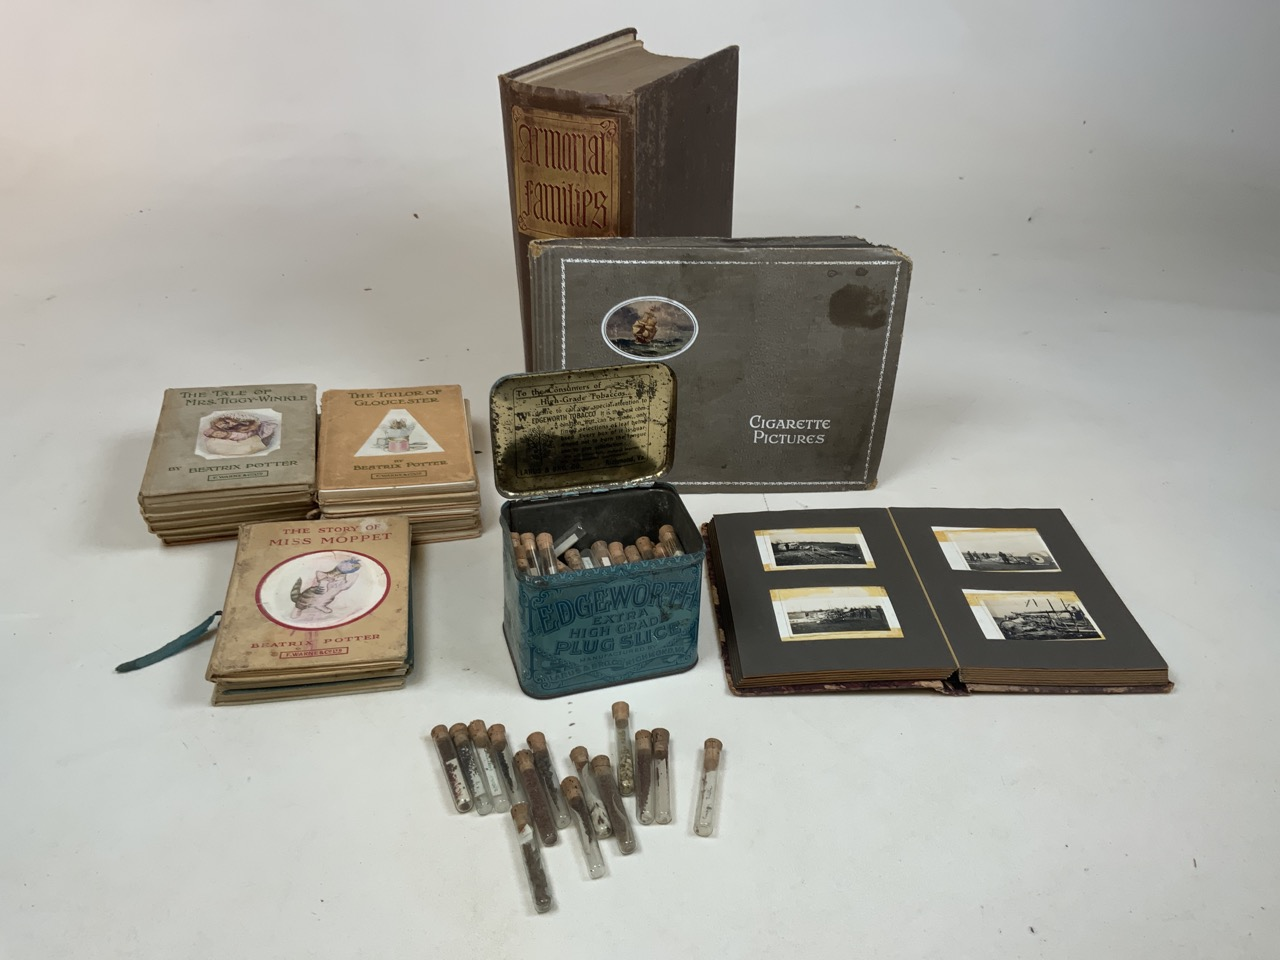 An album of cigarette cards, a collection of Beatrix Potter book A/F, a tobacco tin with glass vials